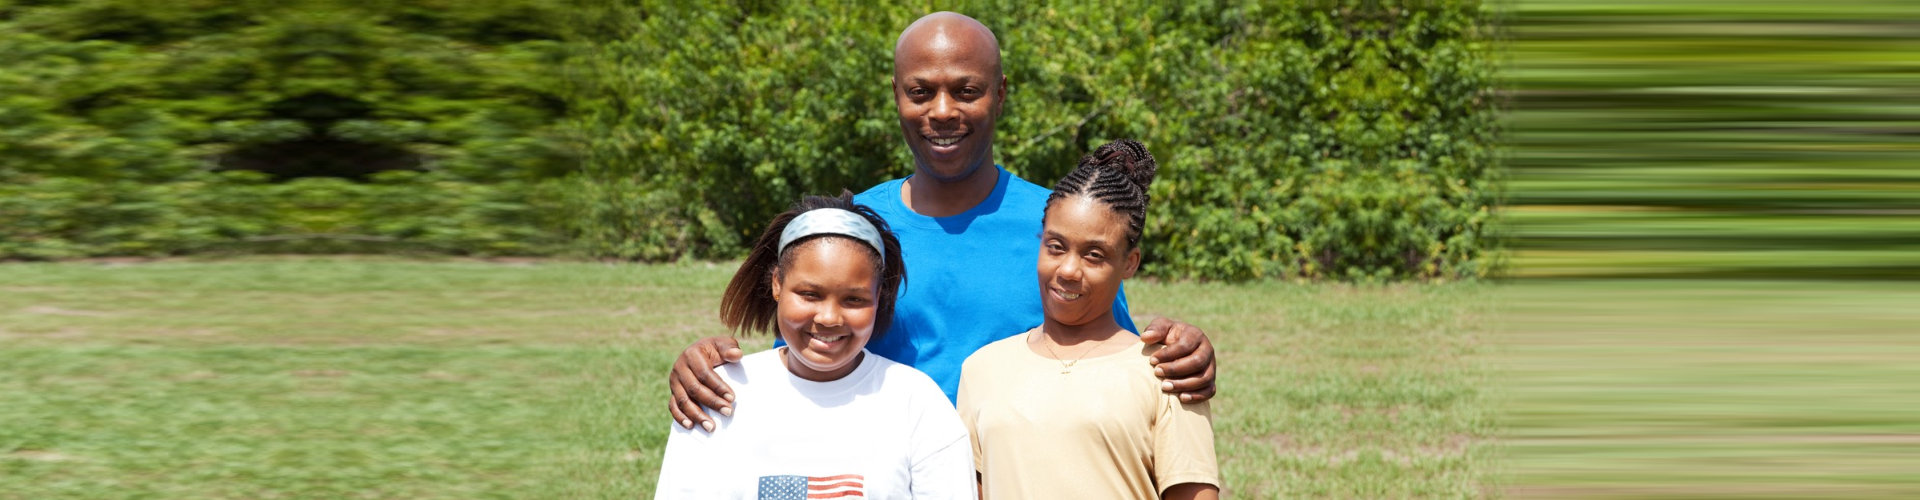 adult man and two female kids smiling